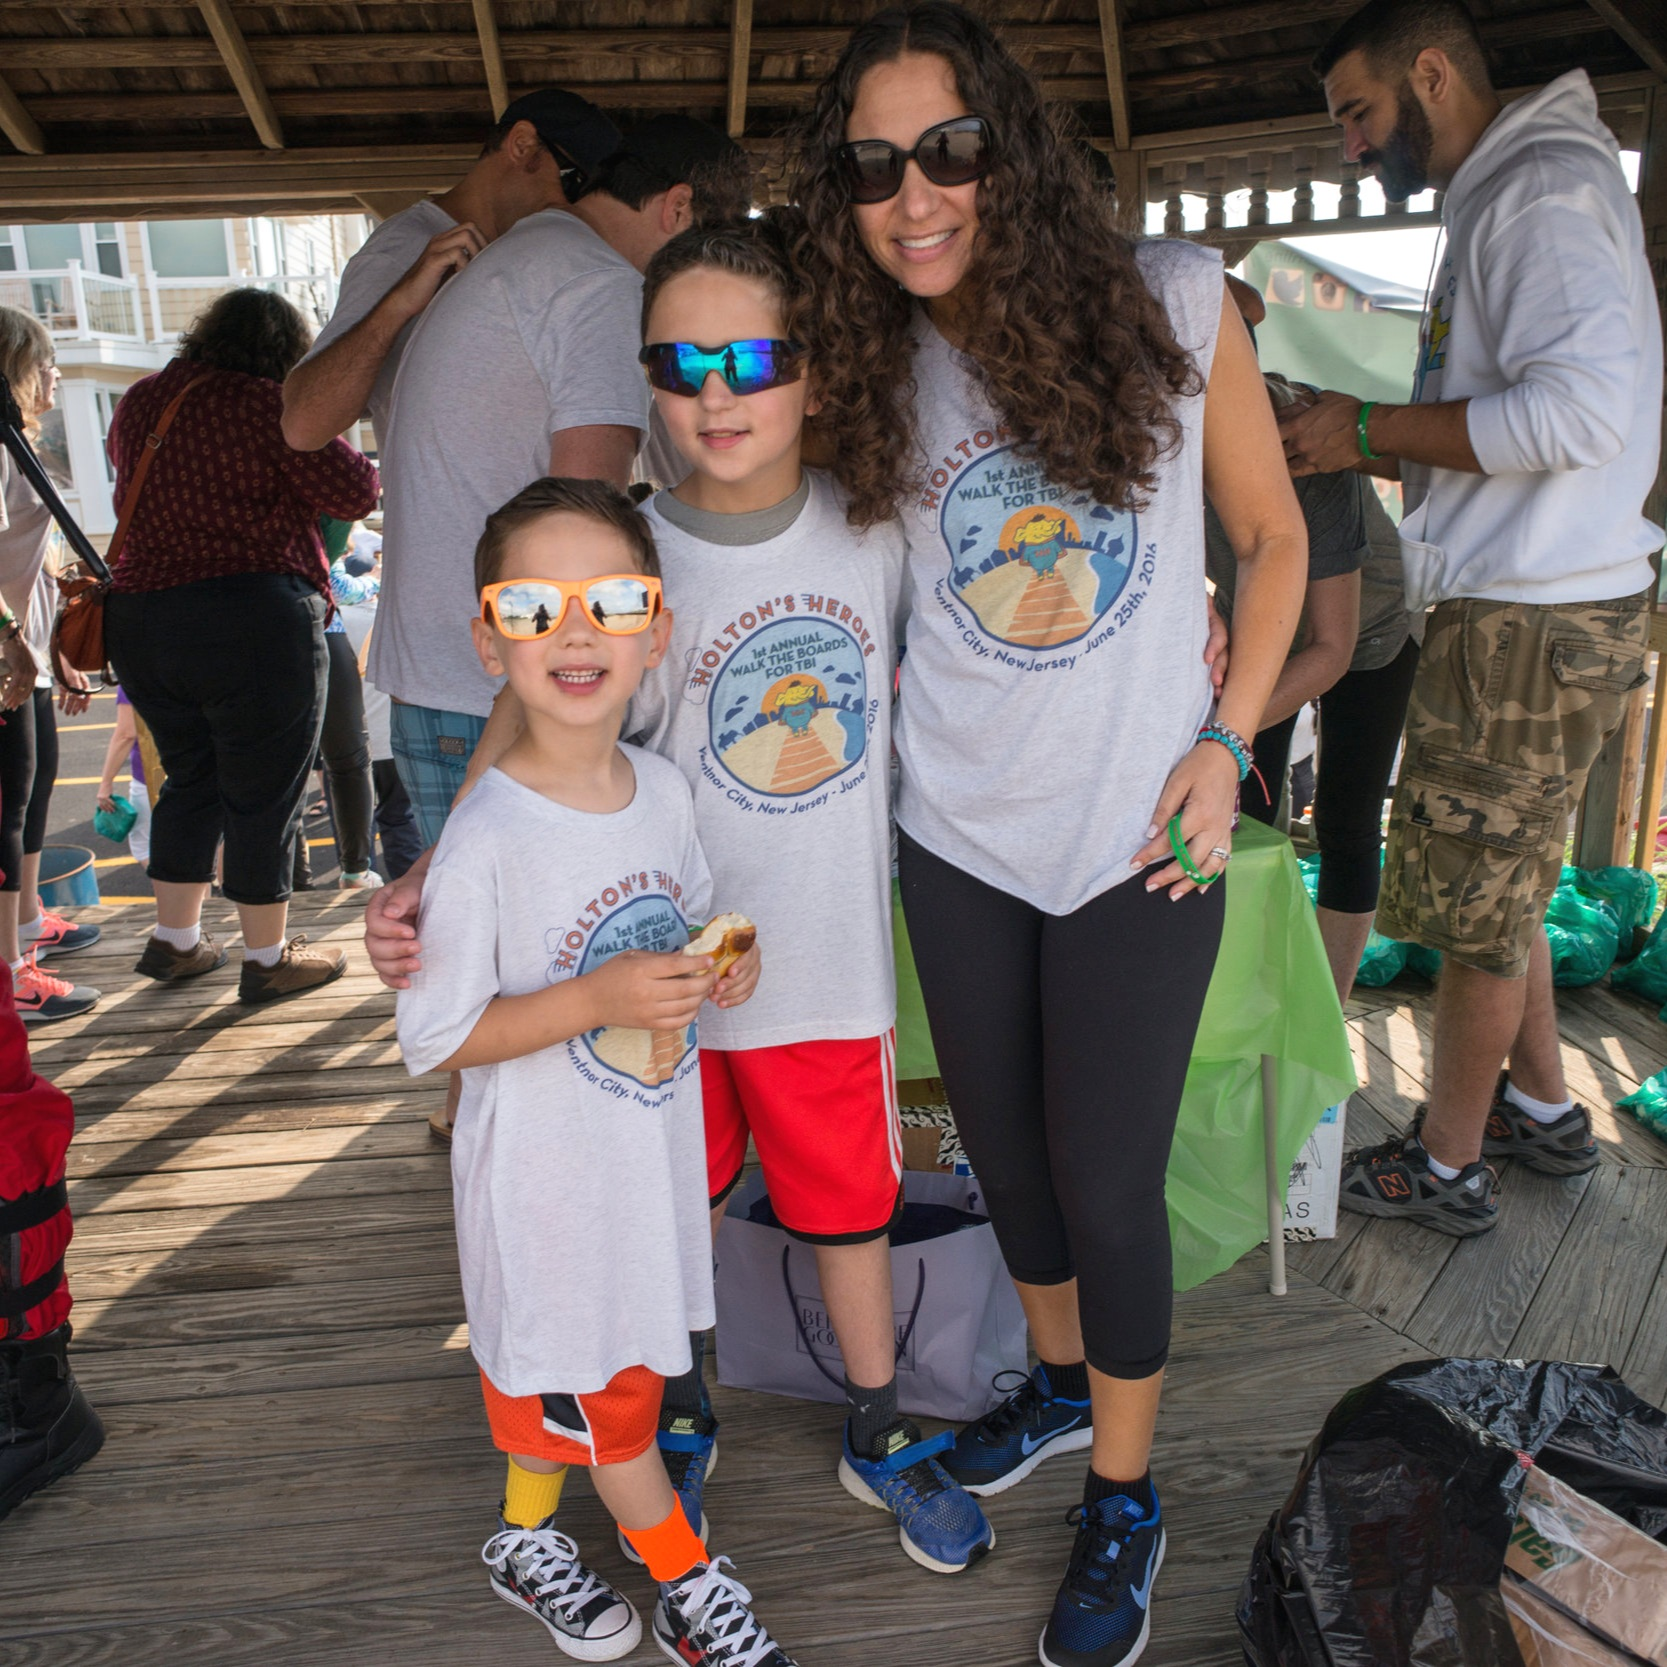 Chase (middle) poses with his mom Wendi and little brother Mason at the 1st annual Holton's Heroes charity walk in Ventnor City, NJ in 2016.